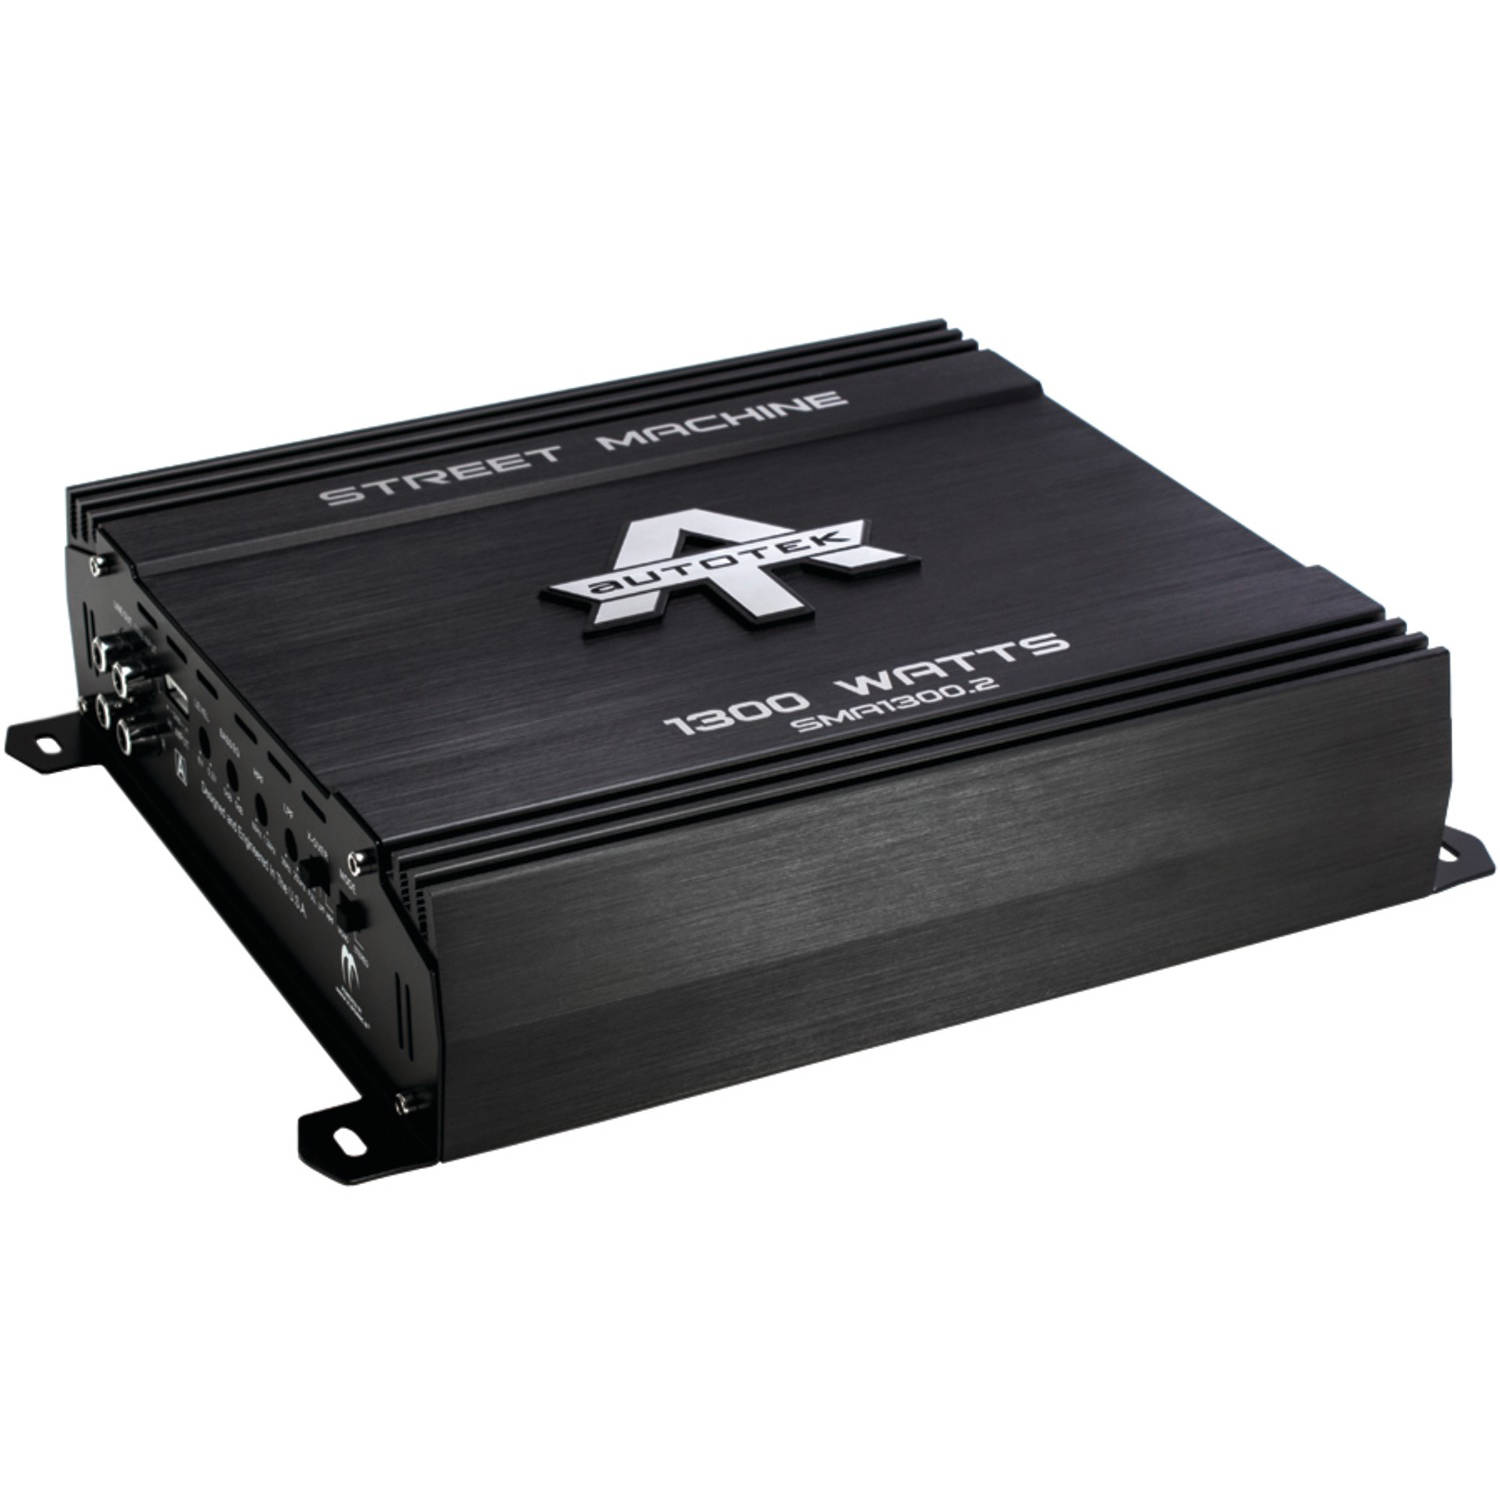 Autotek SMA1300.2 Street Machine 2-Channel Class AB Amp, 1,300 Watts